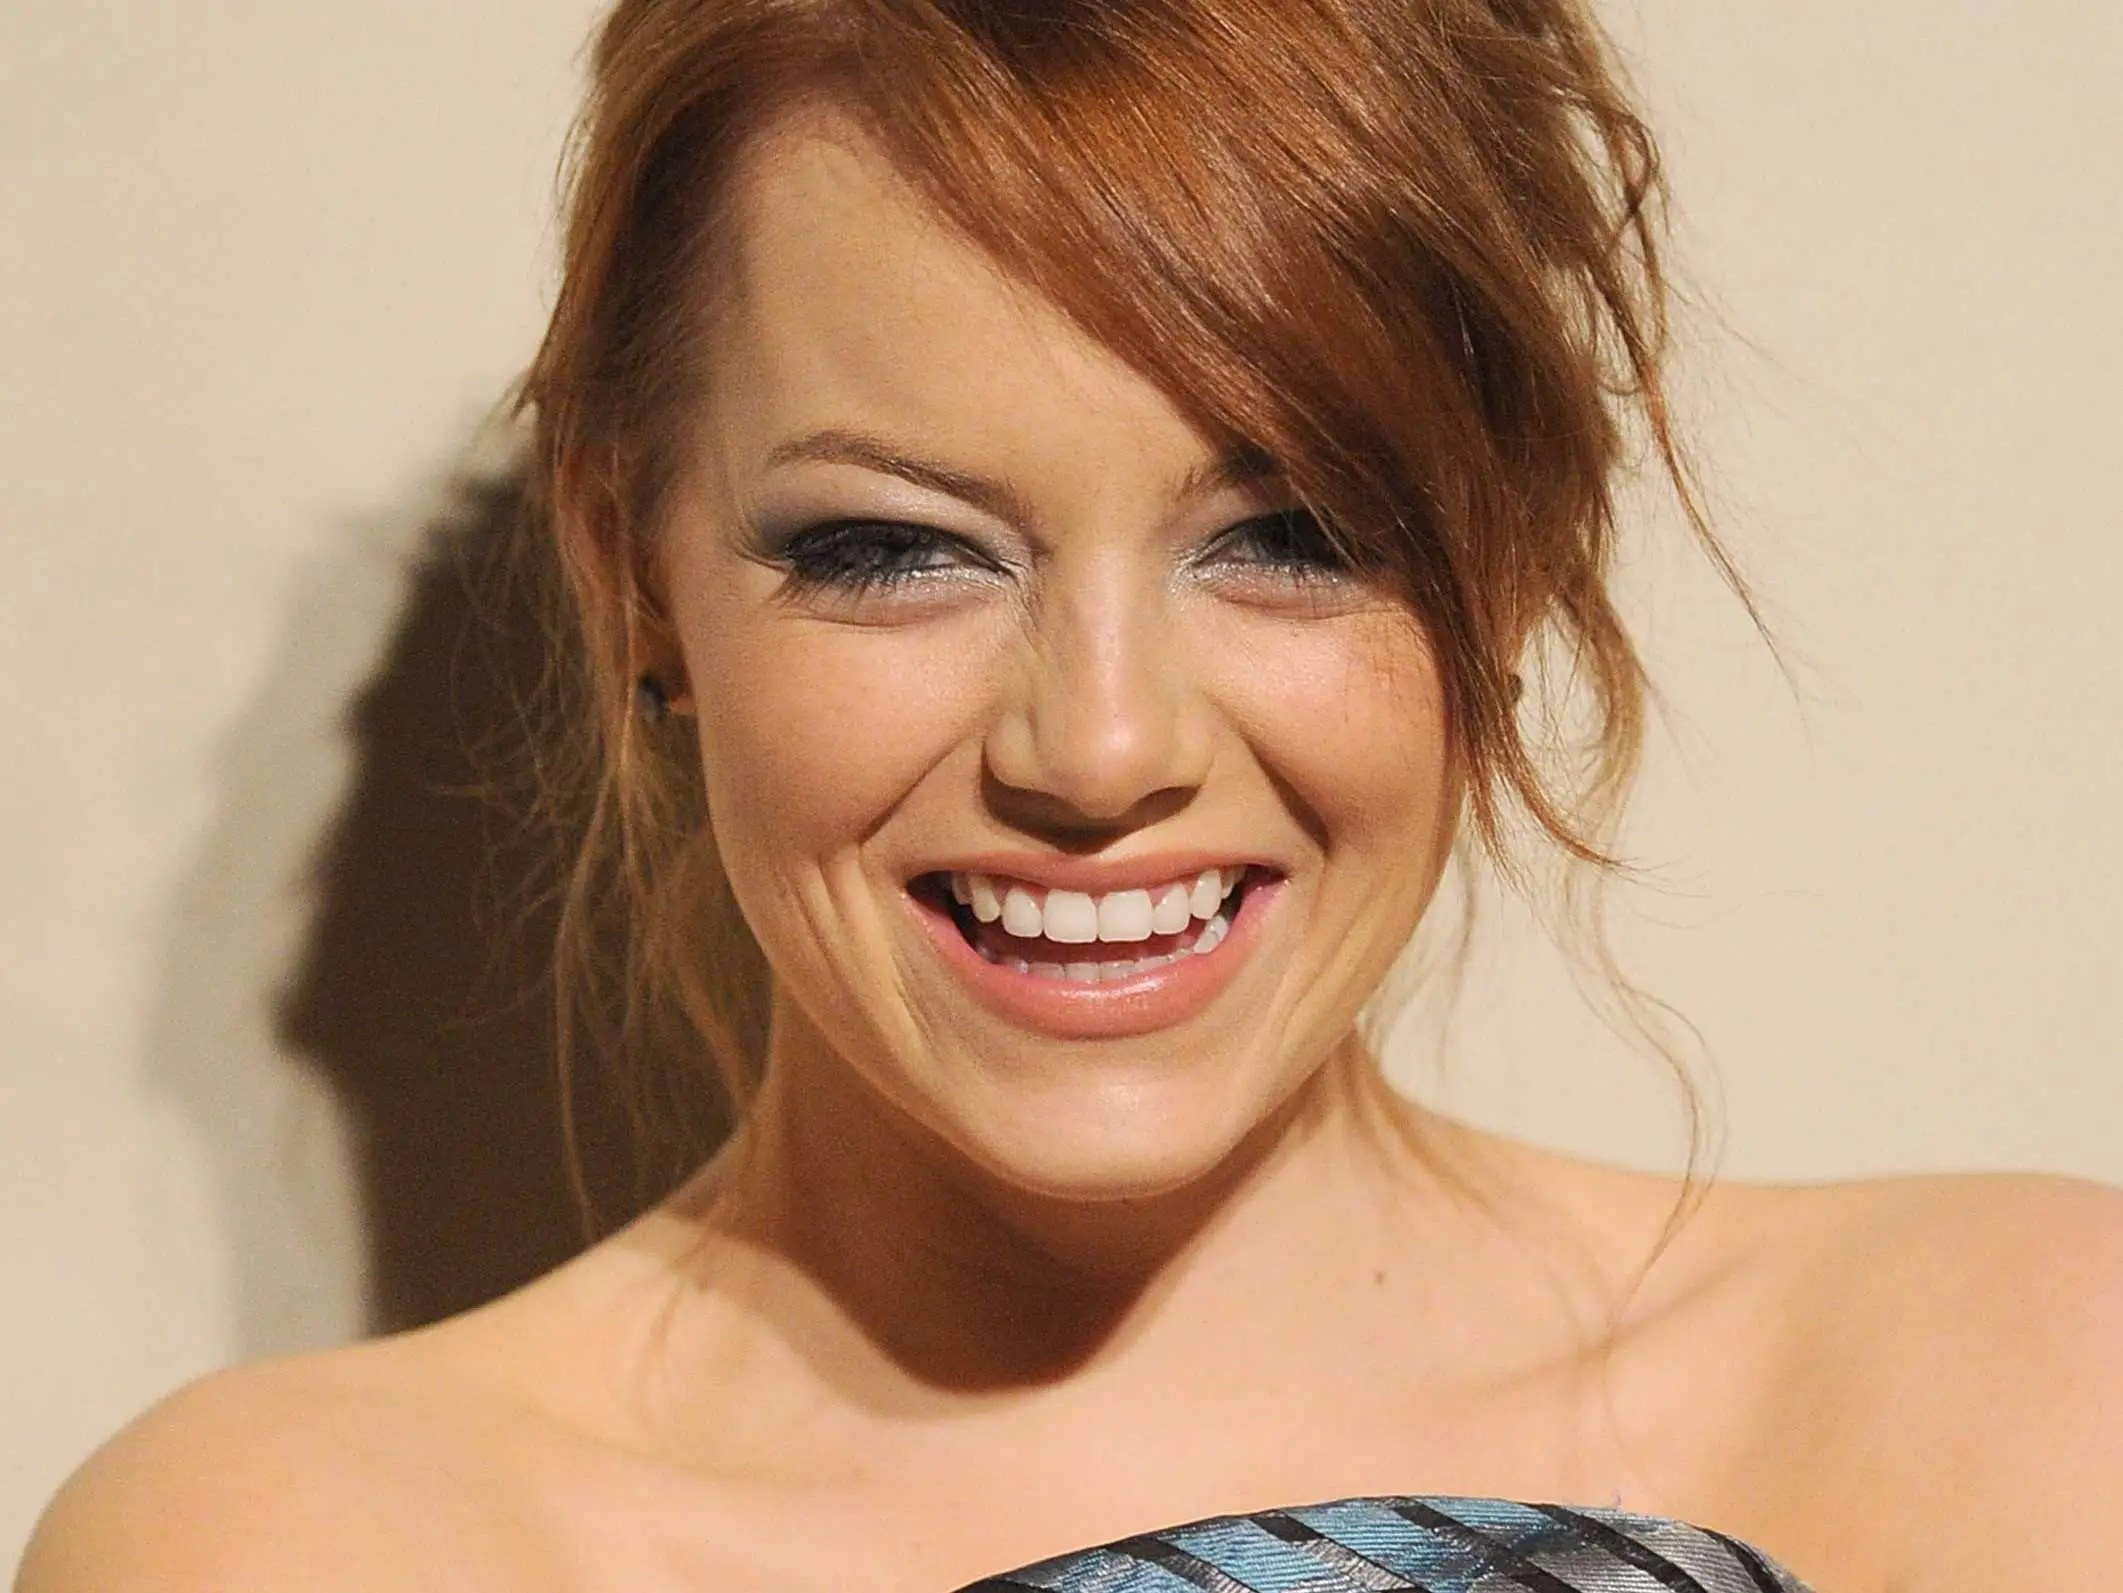 Emma Stone Couleur De Cheveux Emma Stone And Bradley Cooper Write Tinder Profiles